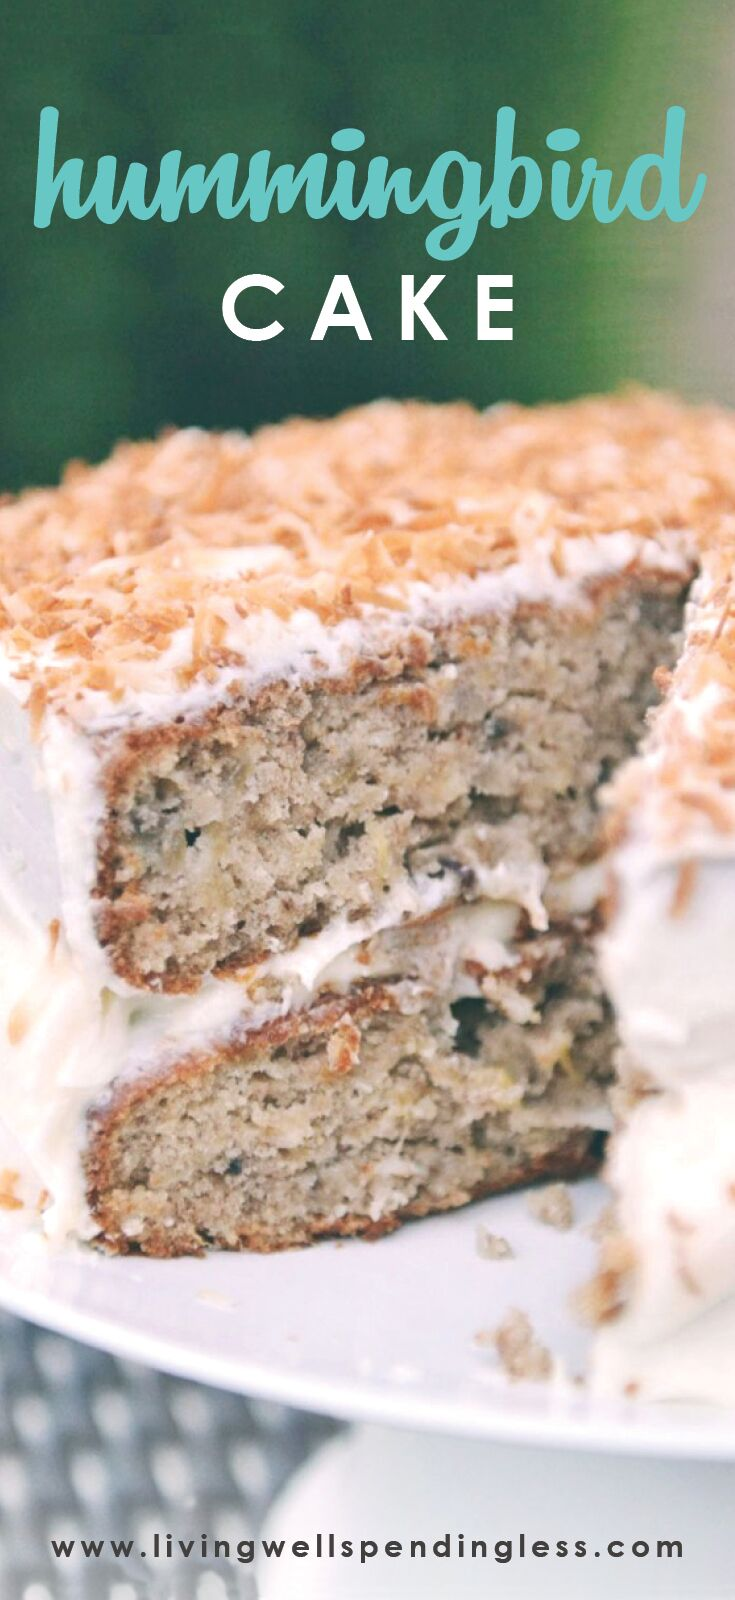 Hummingbird Cake | Hummingbird Cake Recipe | Cake Recipes | Easy Cake Recipes | Southern Cake Recipes | Banana Cake Recipes | Butter Cream Cheese Frosting | Desserts | Yummy Cakes | Easy Hummingbird Cake